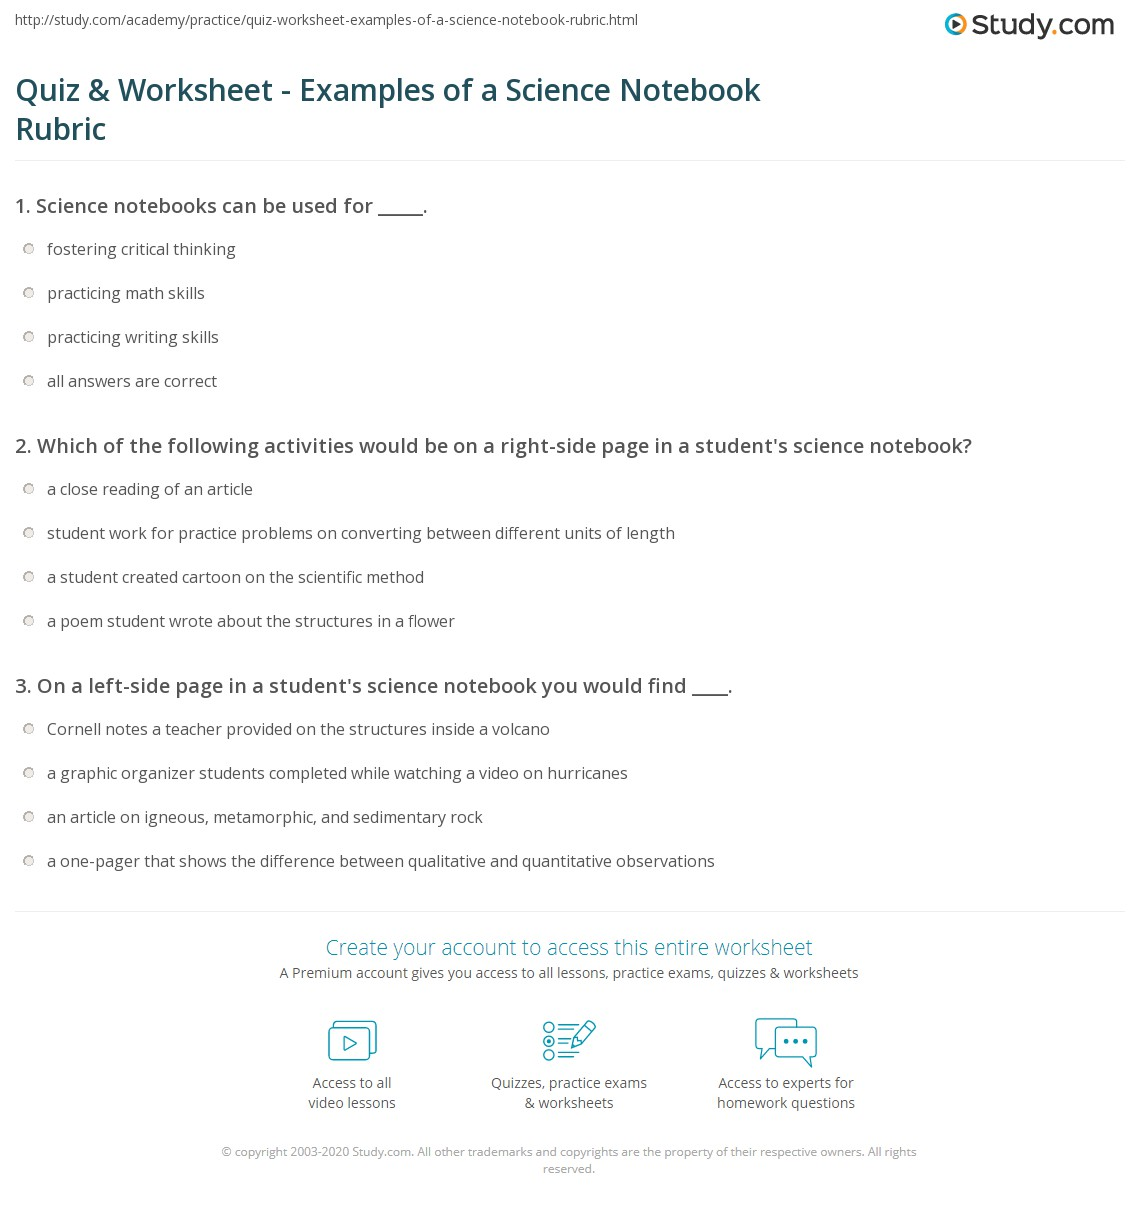 quiz worksheet examples of a science notebook rubric. Black Bedroom Furniture Sets. Home Design Ideas